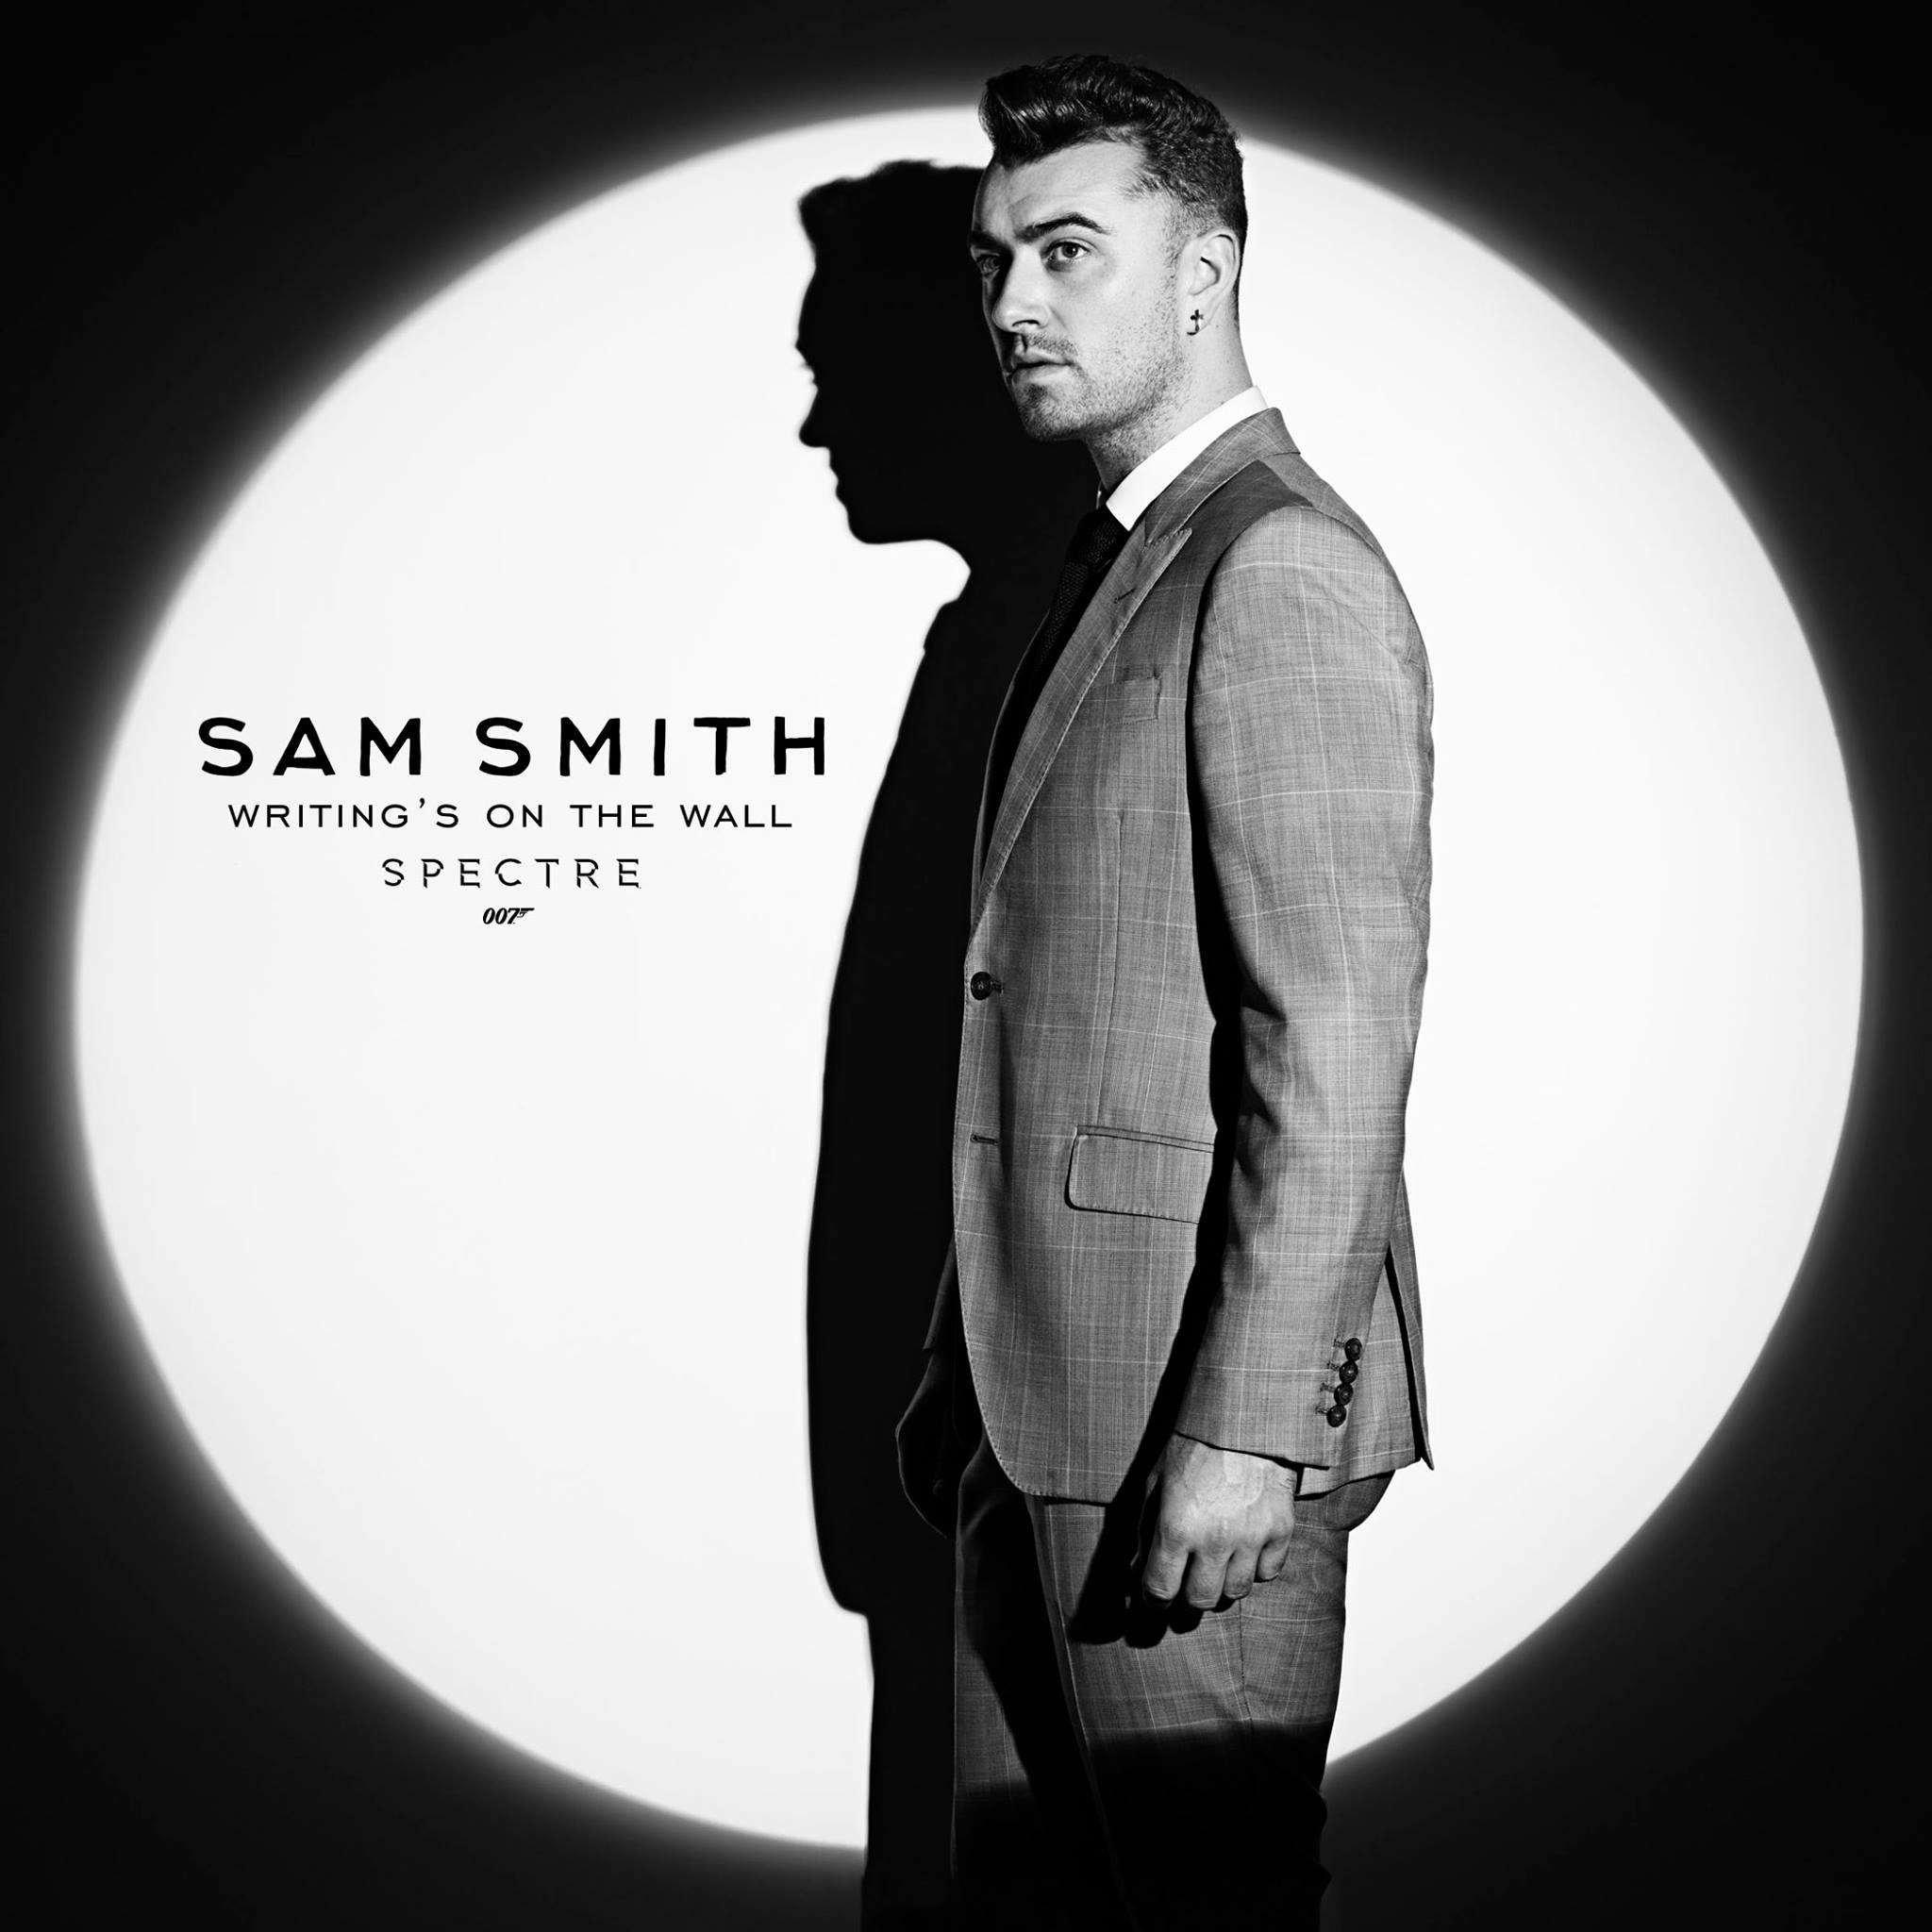 Neuer James Bond Titelsong von Sam Smith – Top oder Flop?